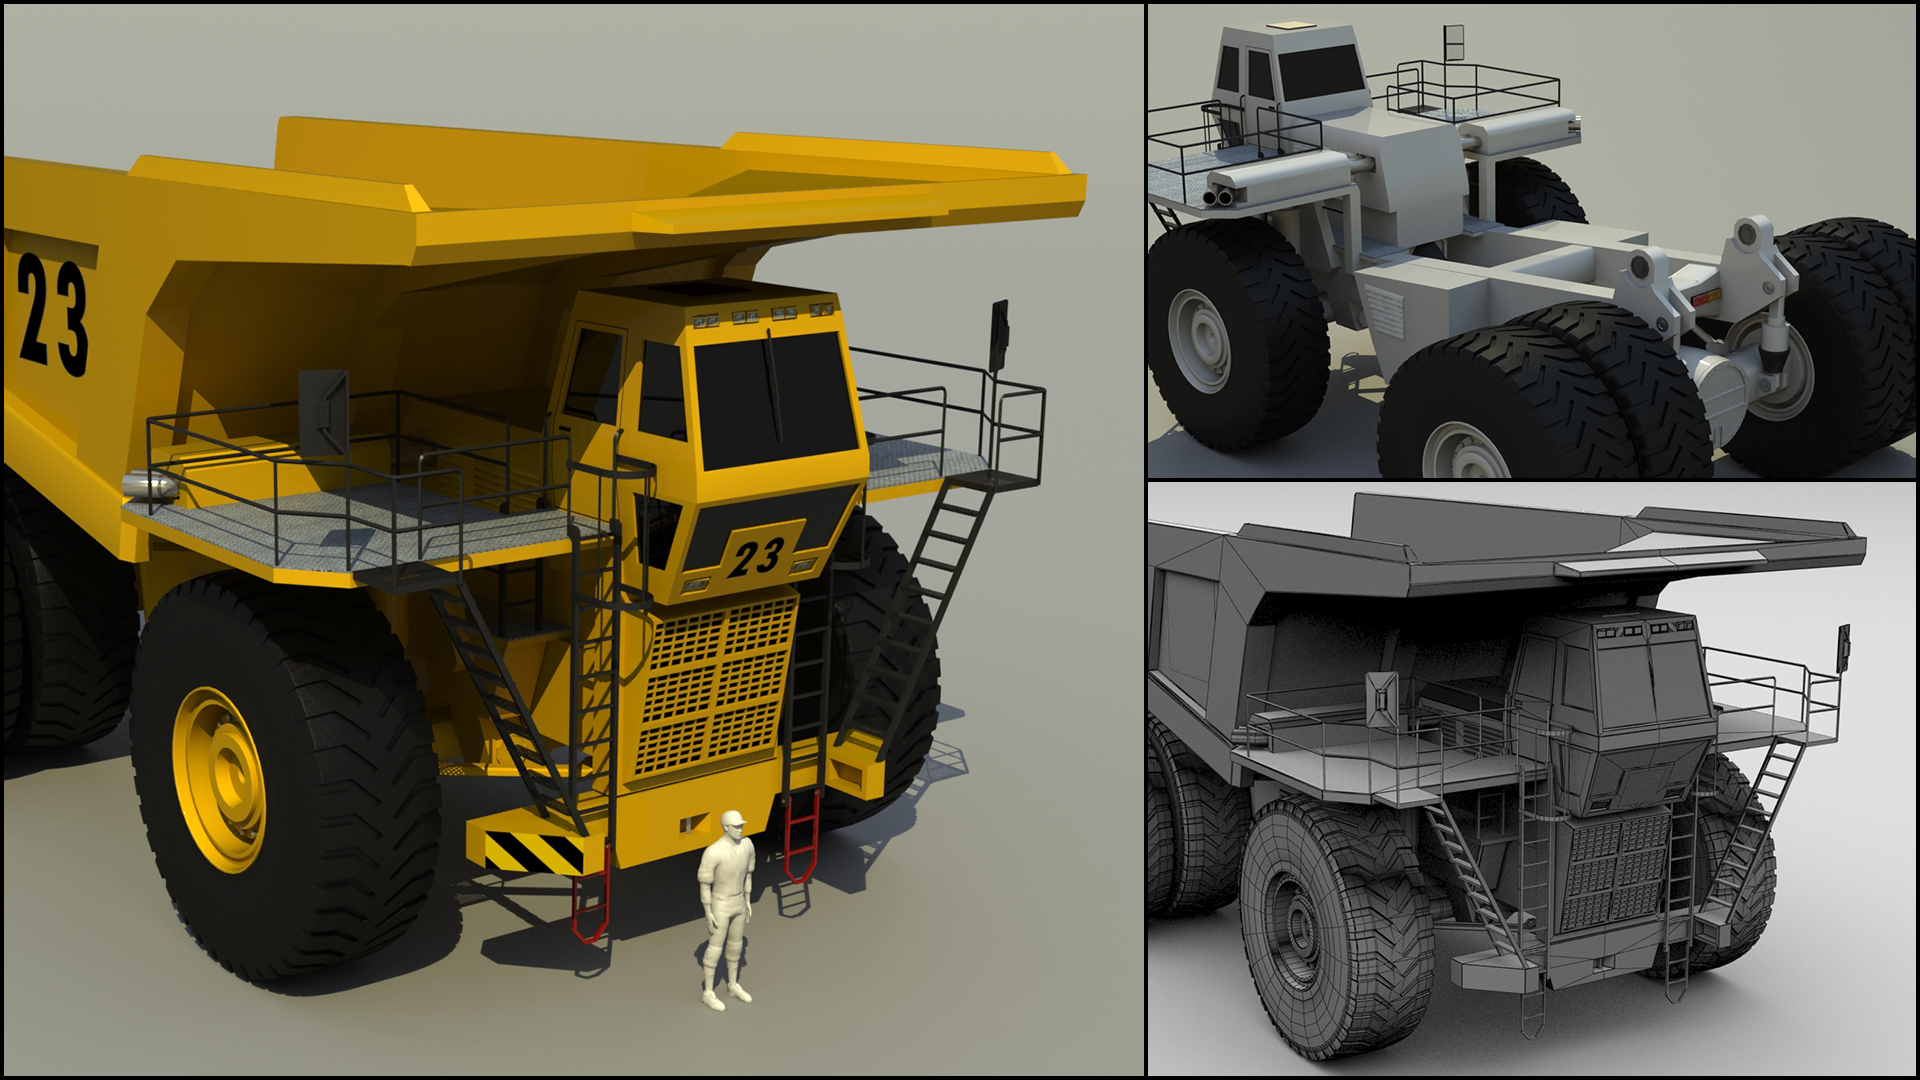 2011-08_The Crew_F.Beudin_Giant Truck